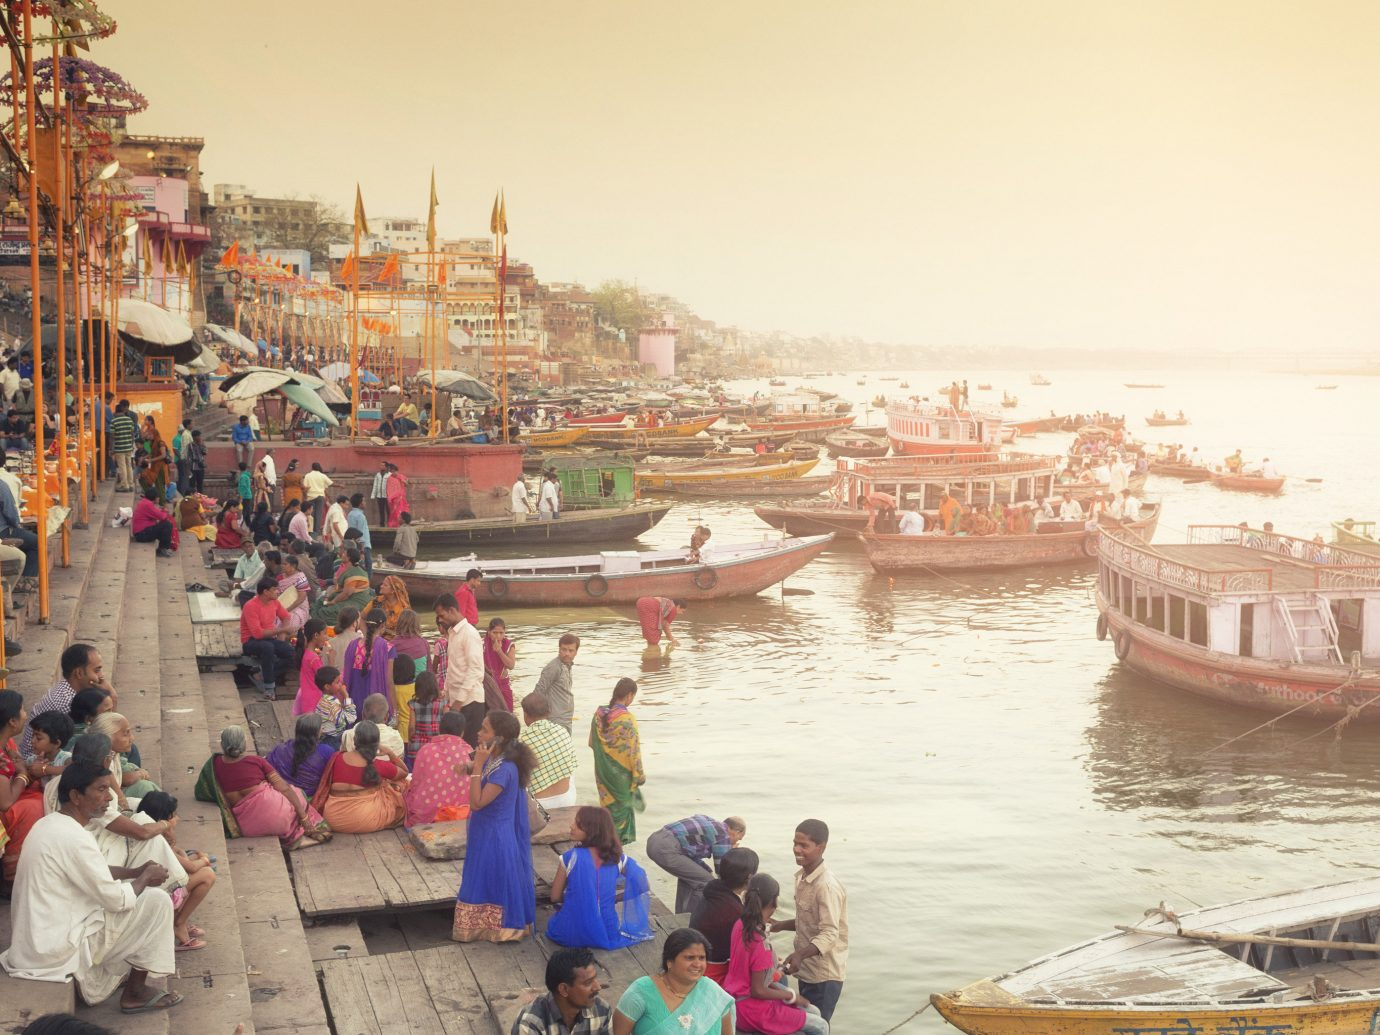 India Jaipur Jodhpur Trip Ideas outdoor waterway body of water person water transportation water tourism City sky people Sea temple group boating recreation vacation River leisure several